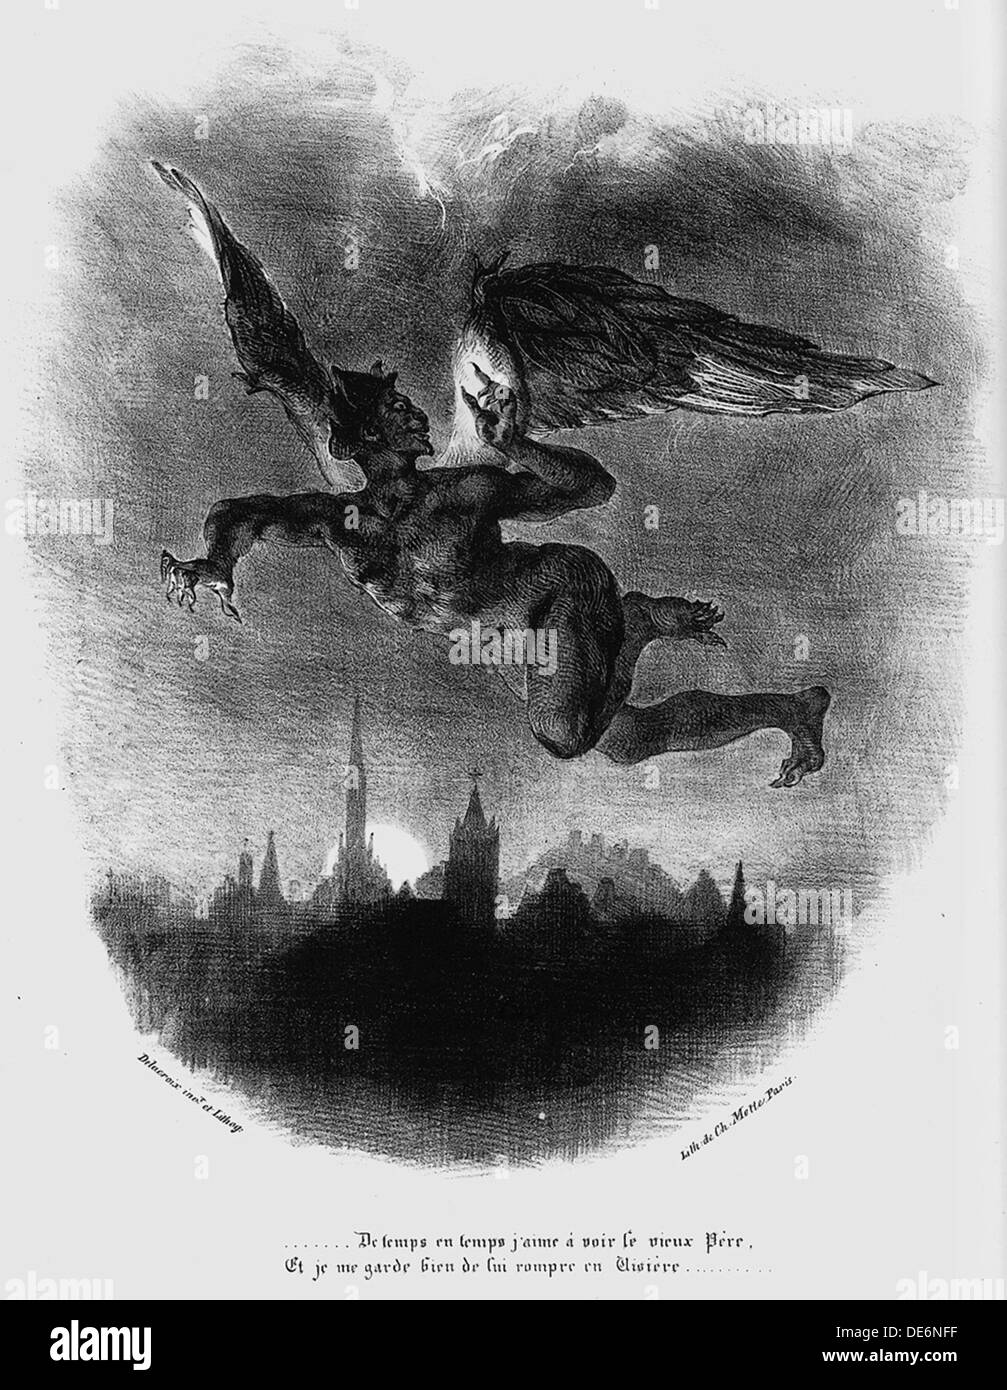 Mephistopheles Prologue in The Sky. Illustration to Goethe's Faust, 1828. Artist: Delacroix, Eugène (1798-1863) - Stock Image